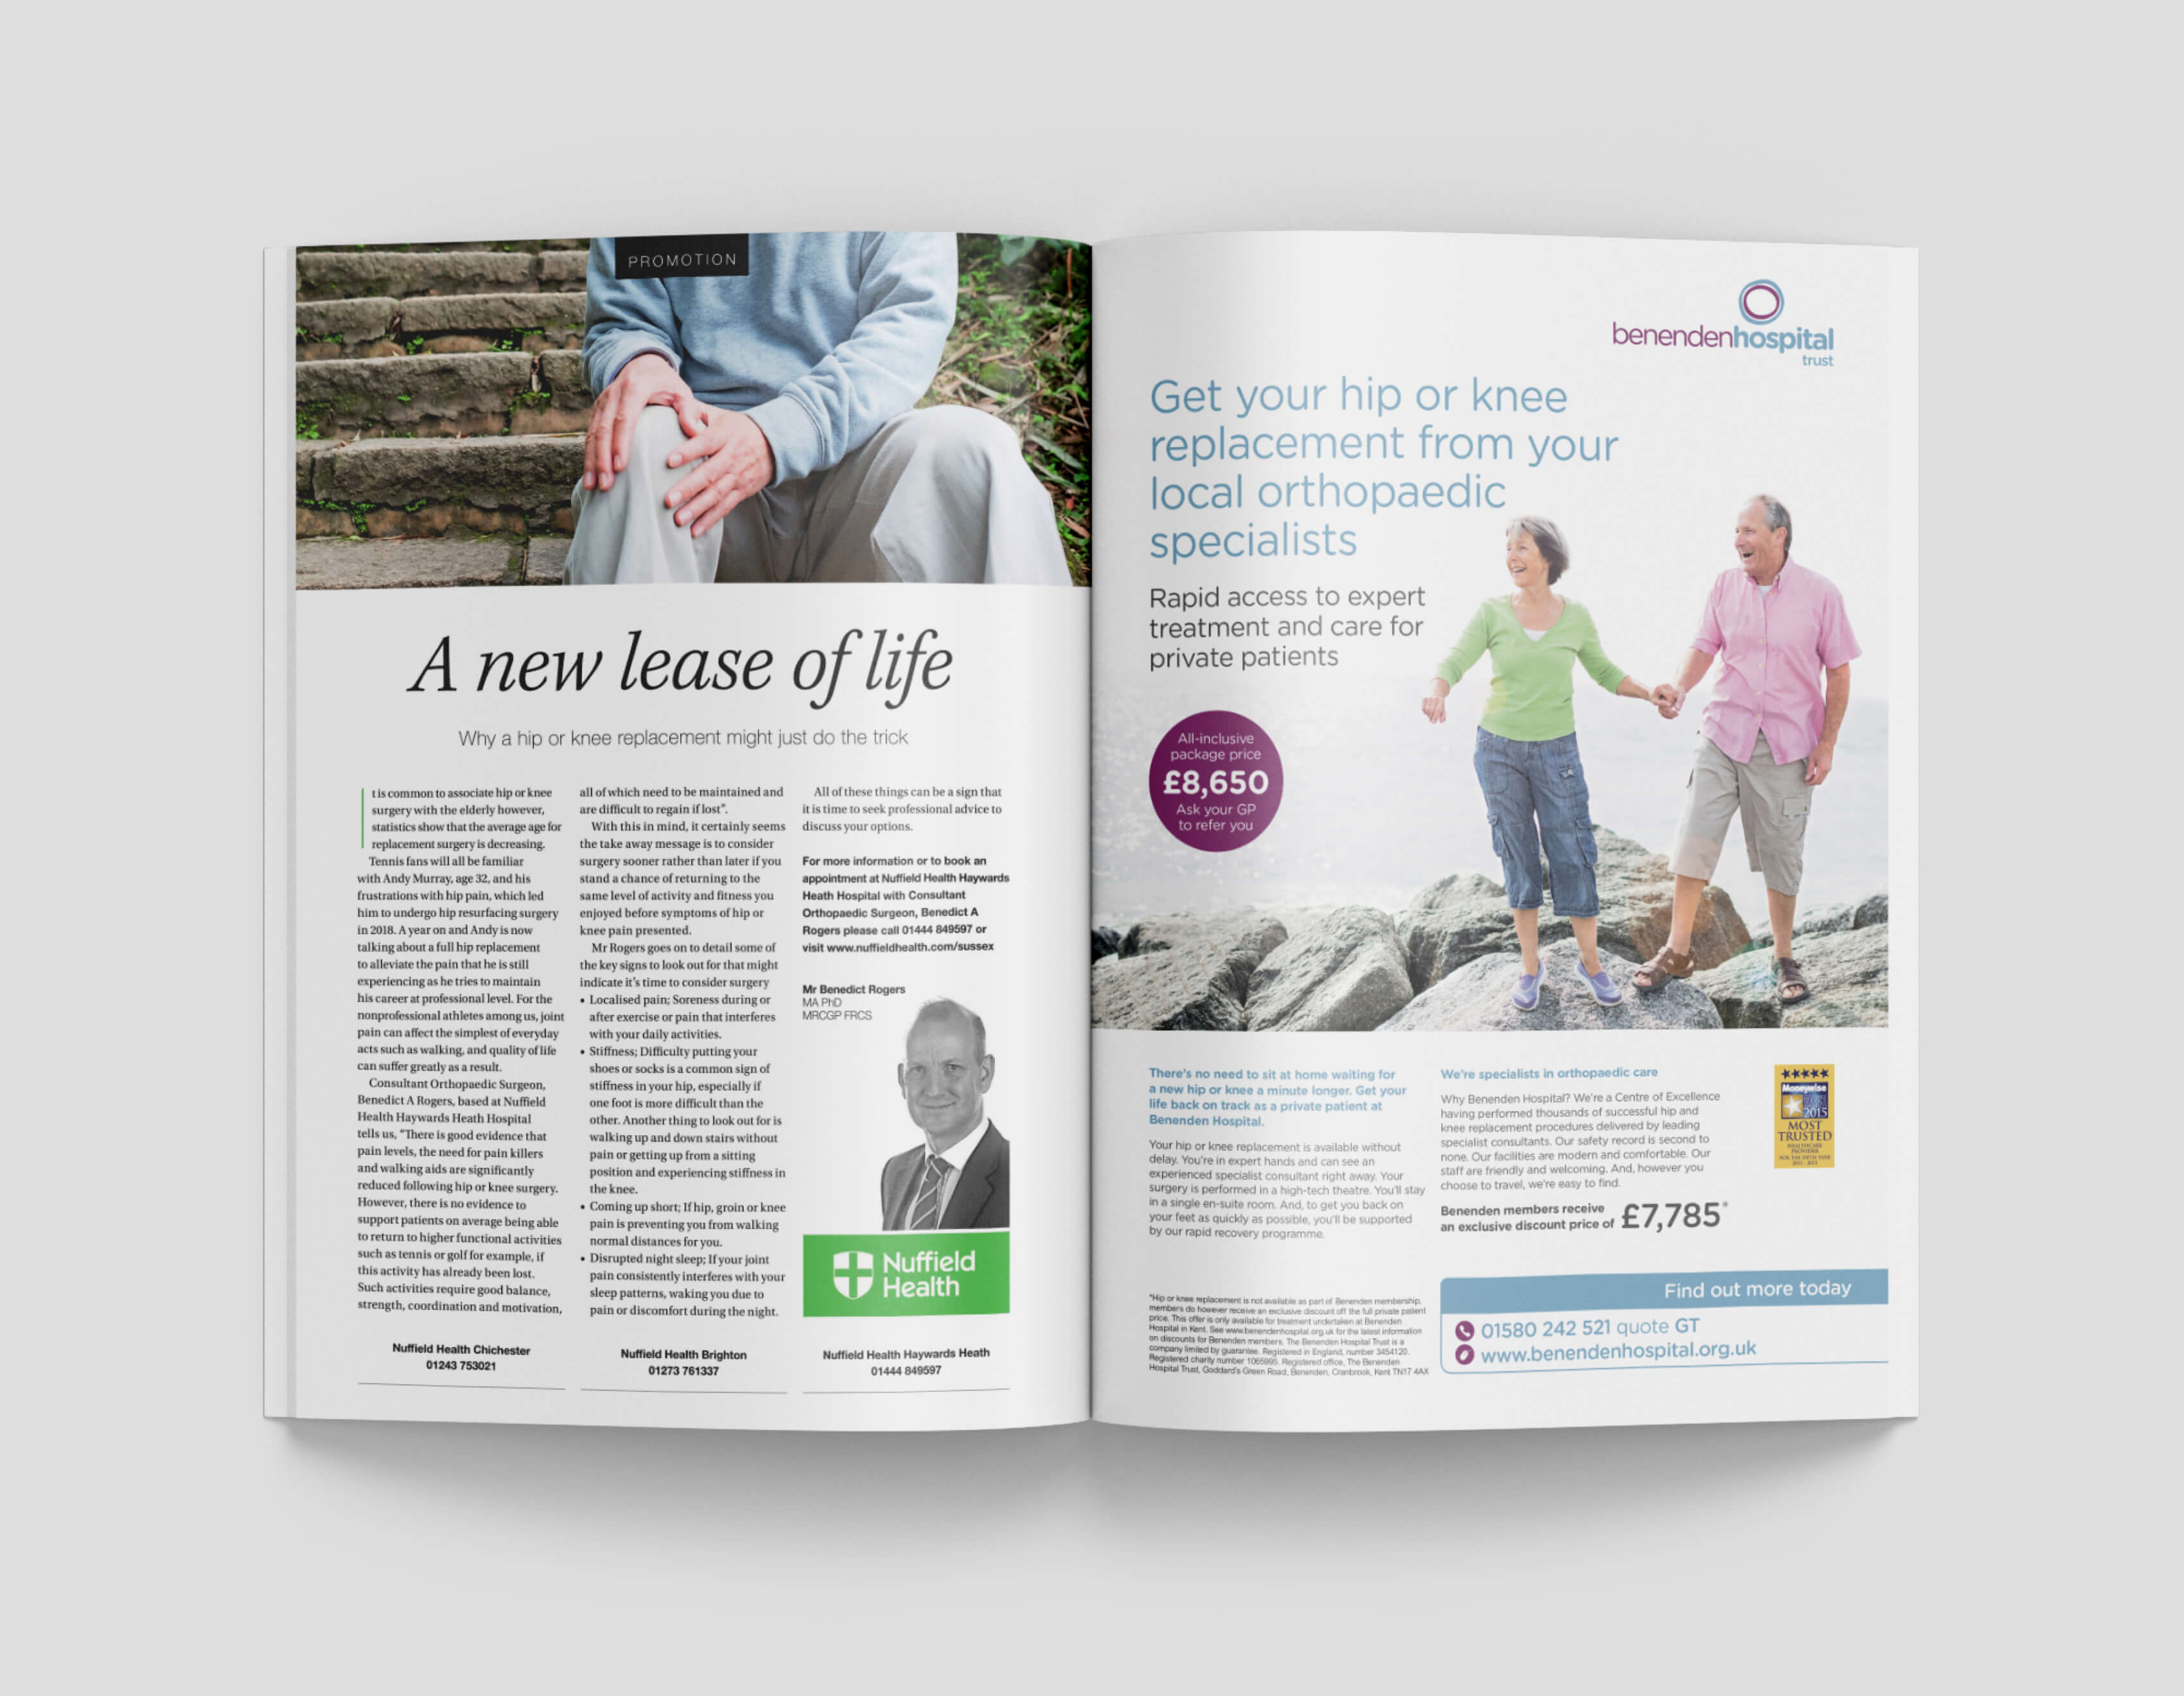 Benenden double page spread advert